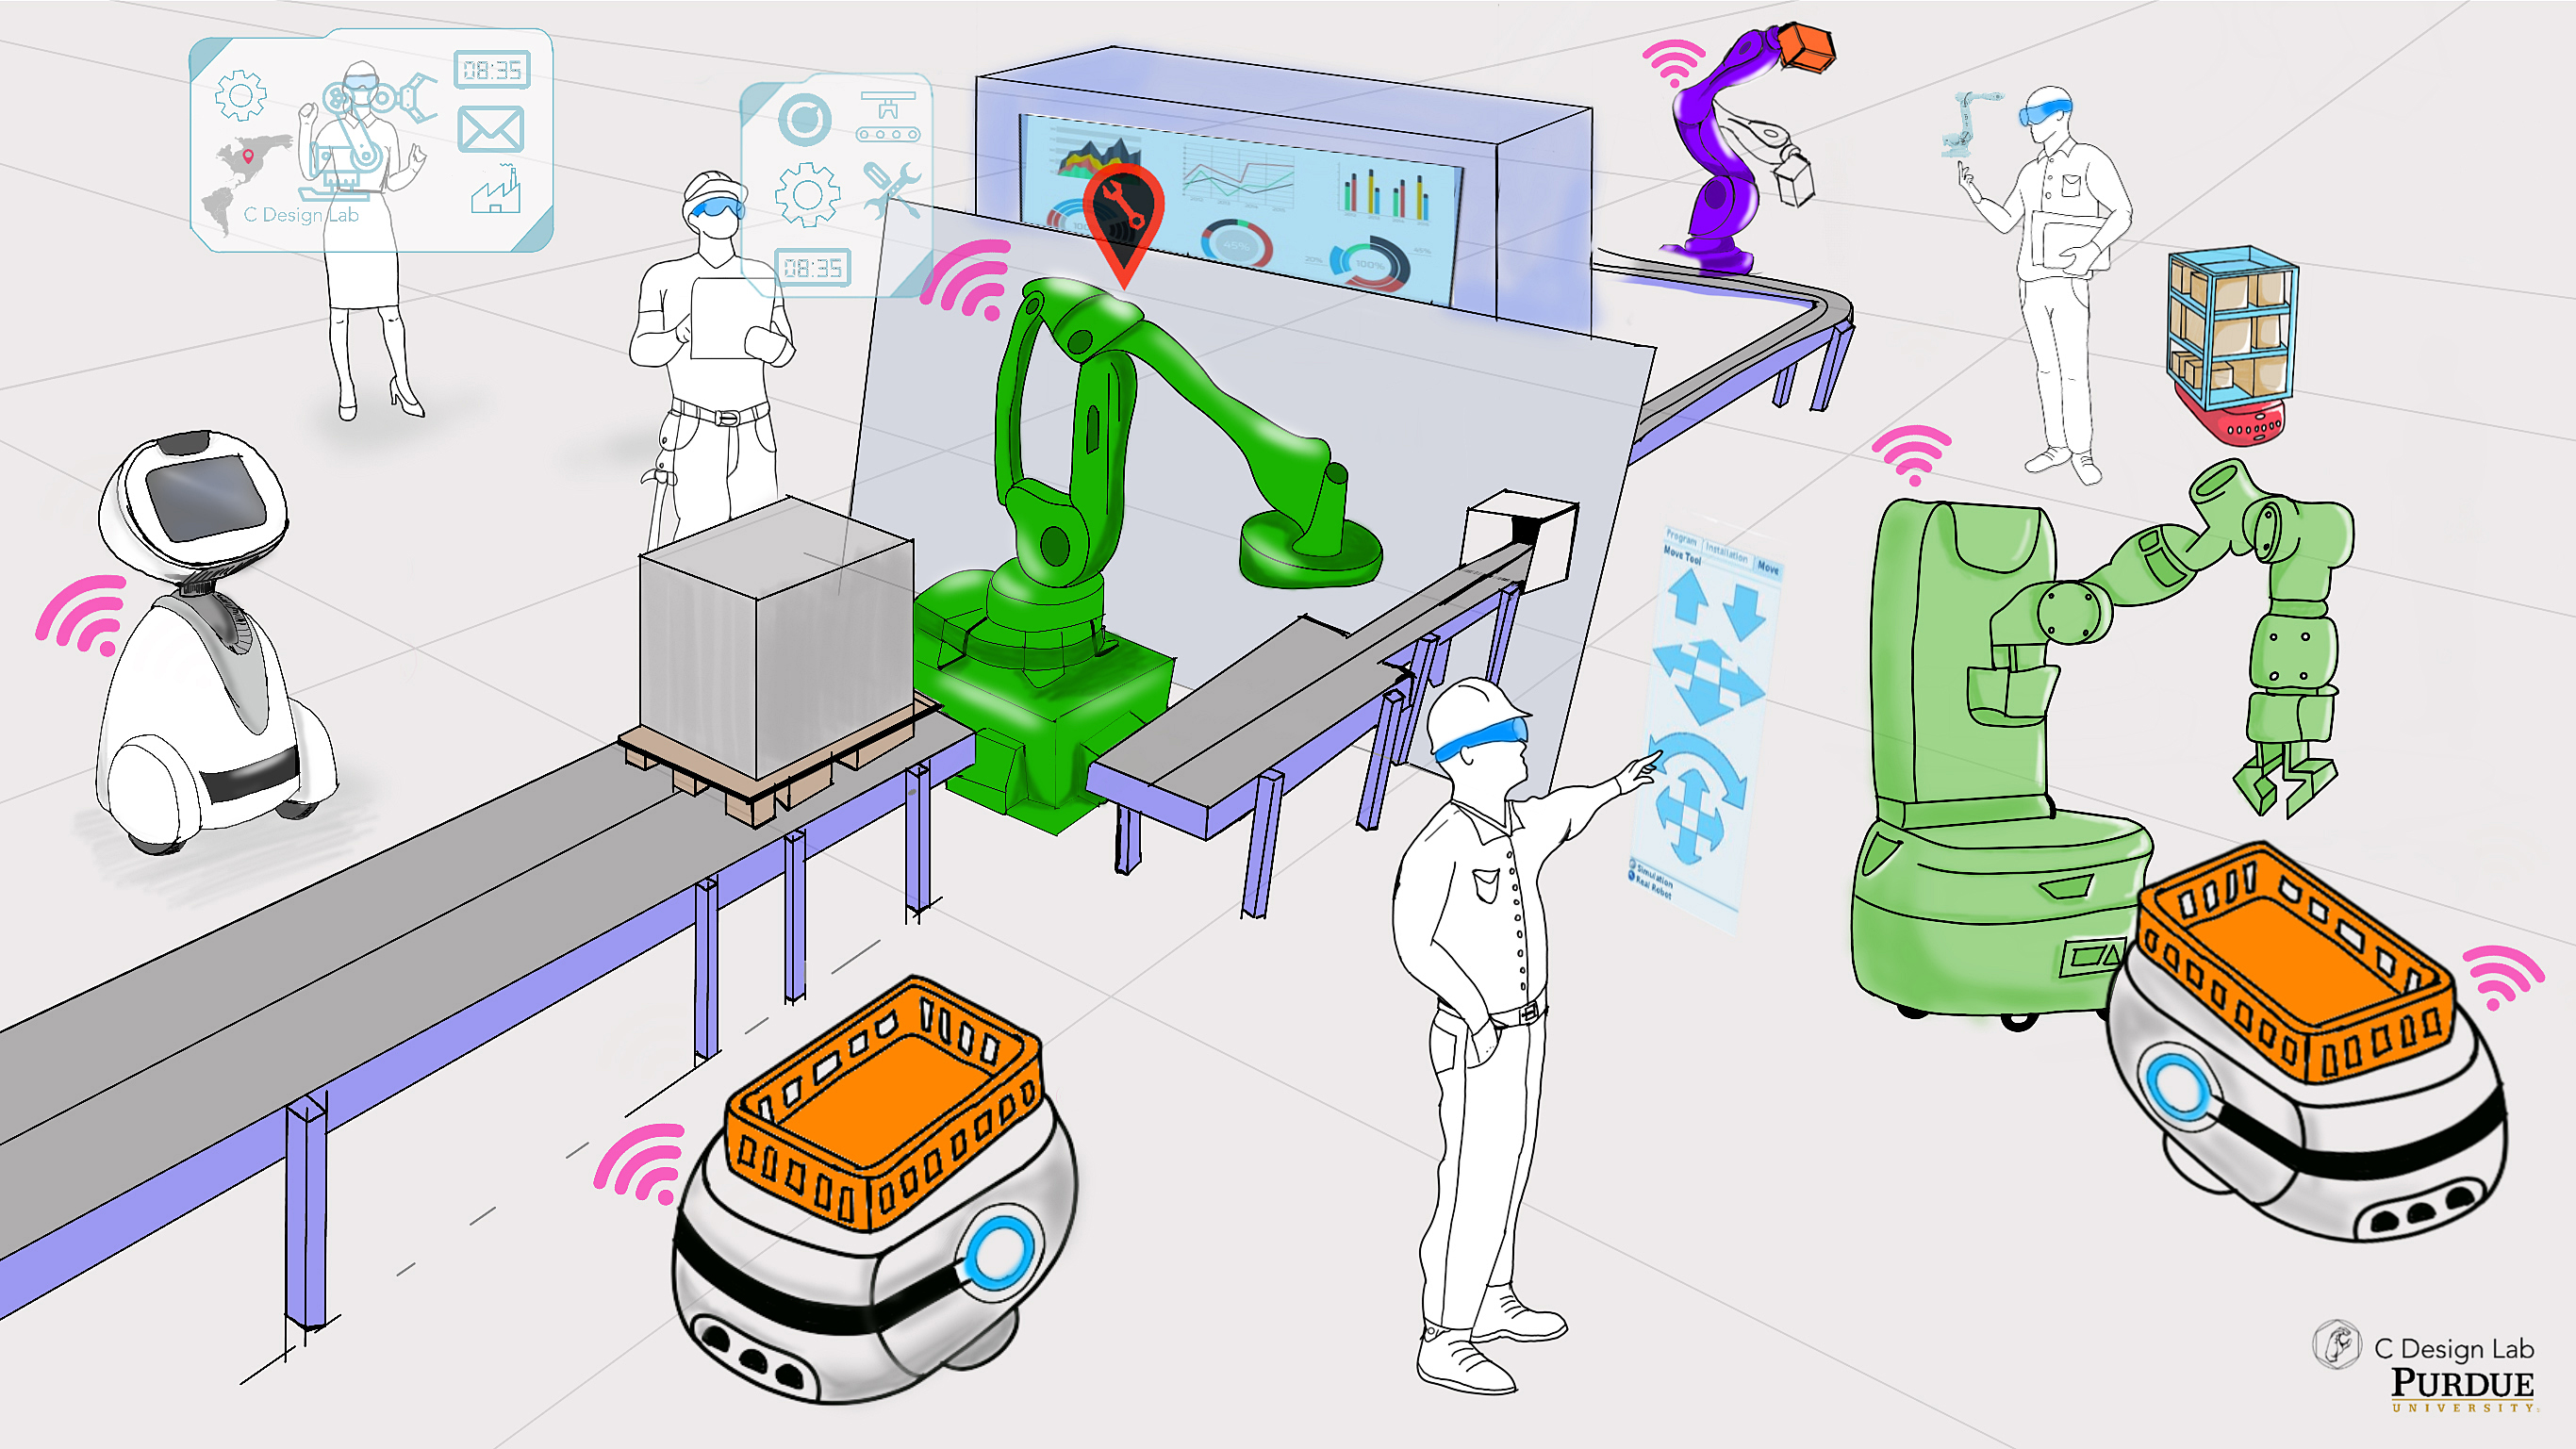 Convergence Design Lab to prepare manufacturers, workers for the 'factory of the future'